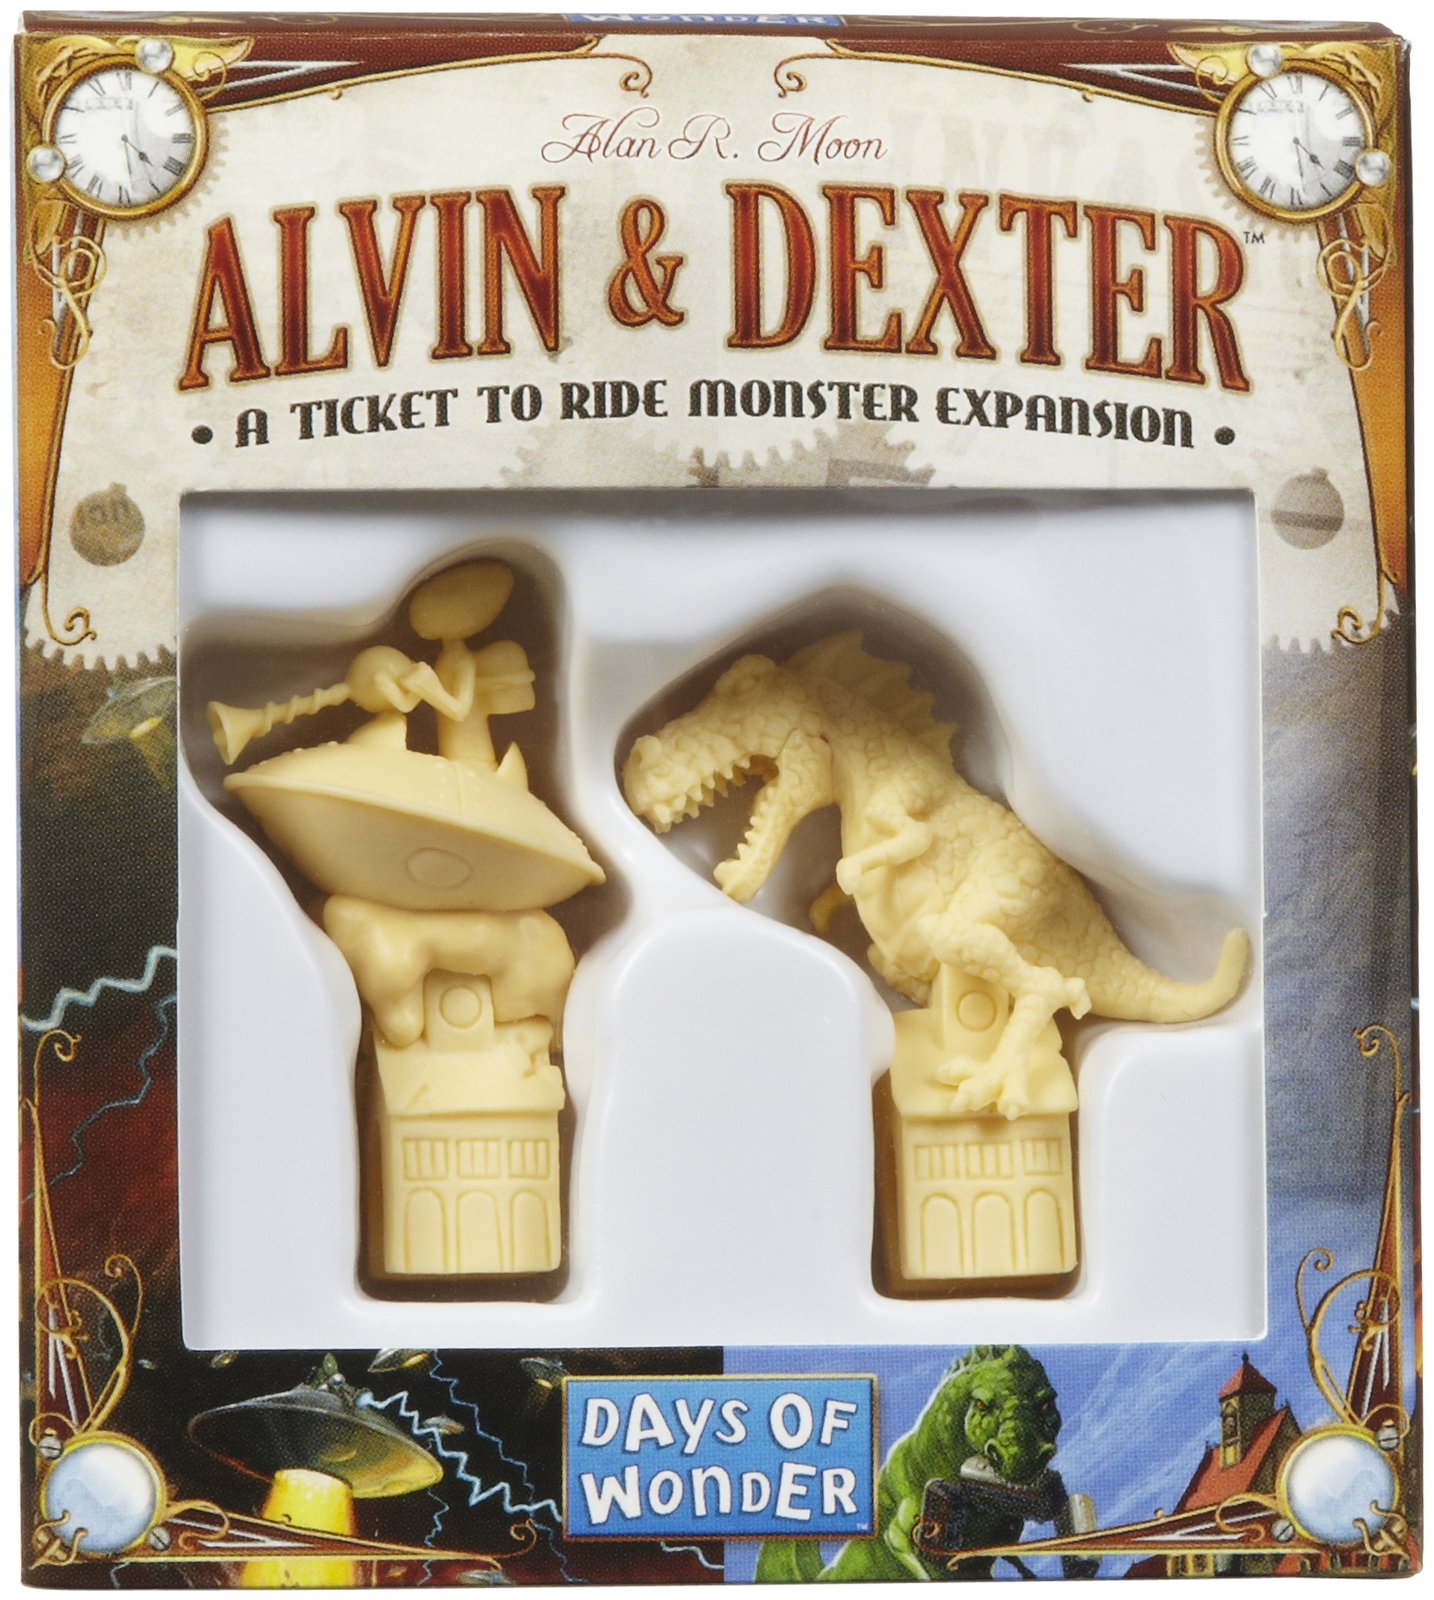 dexter-and-alvin